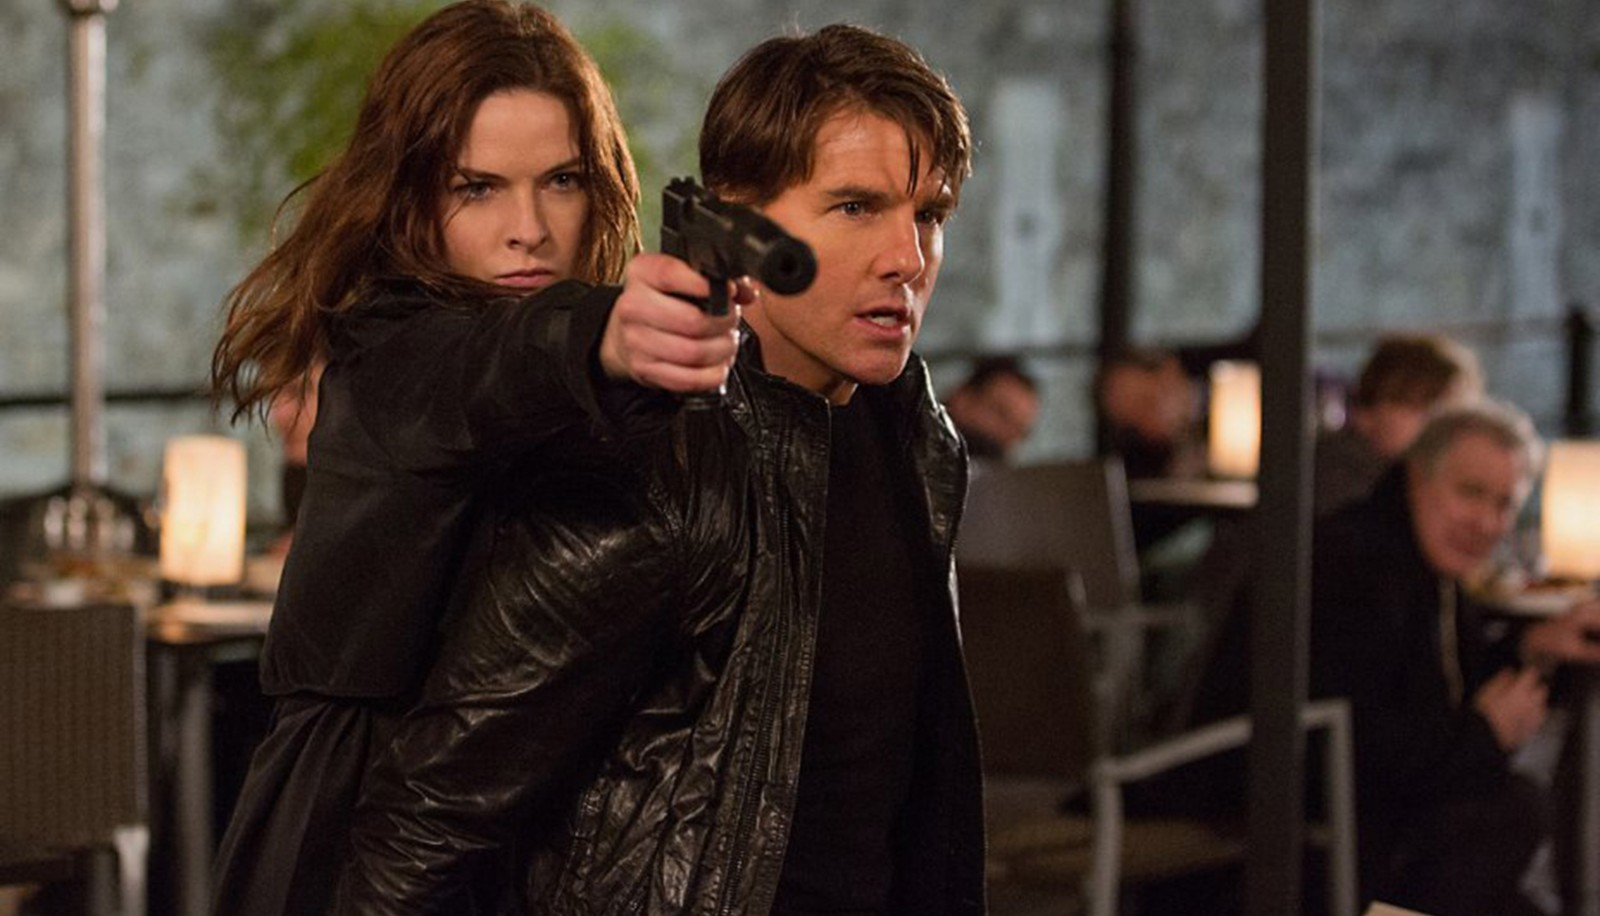 Tom Cruise and Rebecca Ferguson star in 'Mission: Impossible Rogue Nation.'